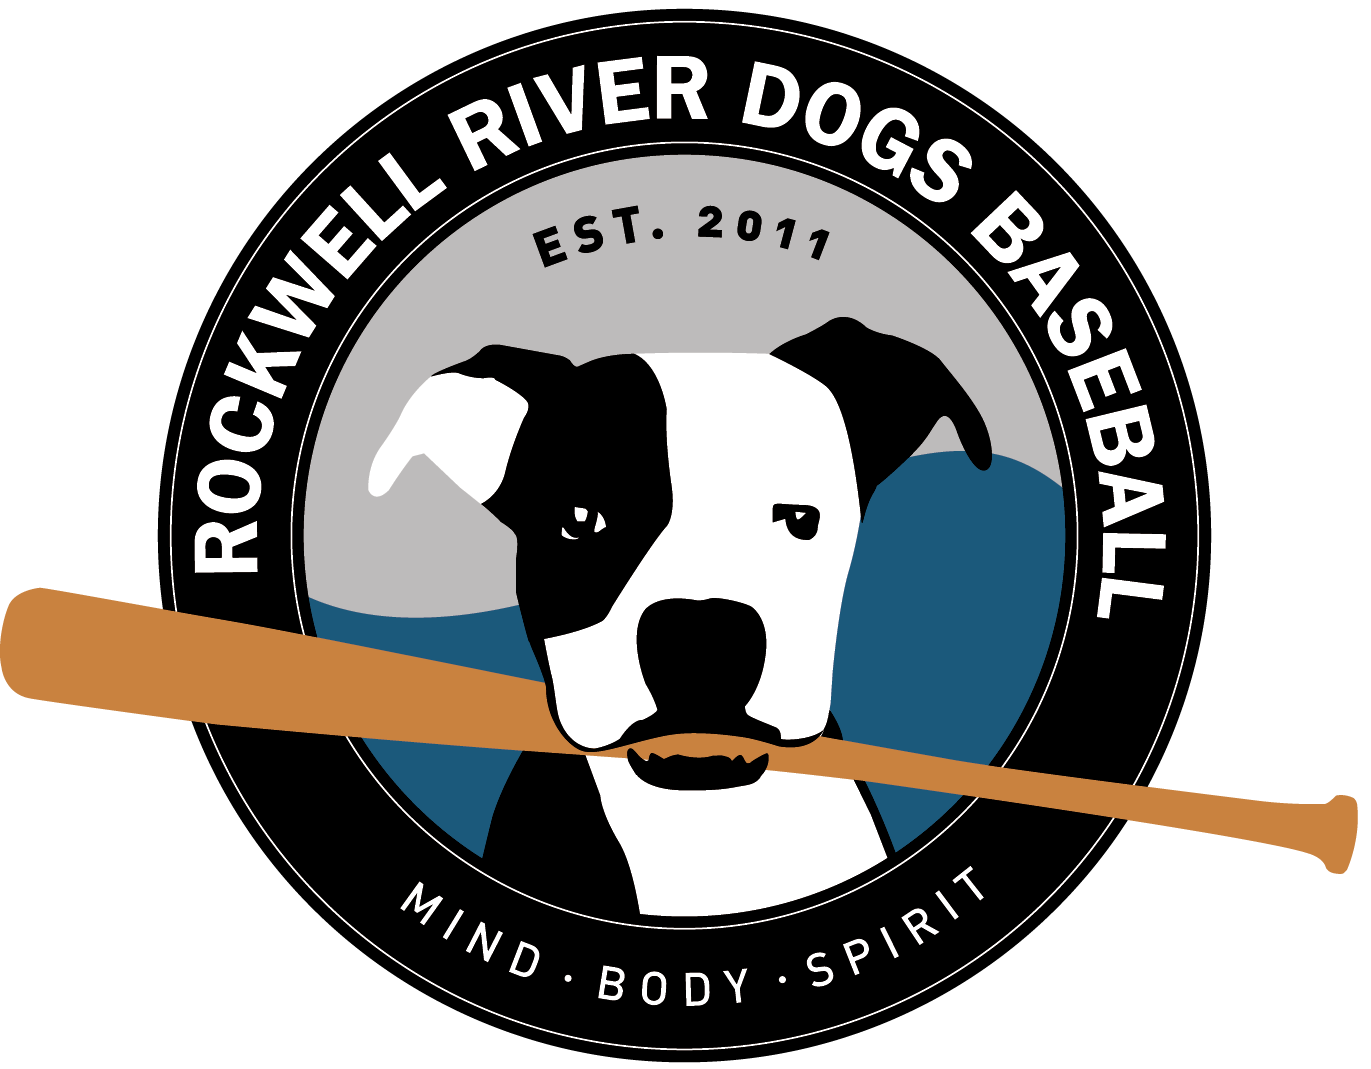 Rockwell_River_Dogs_100311.png